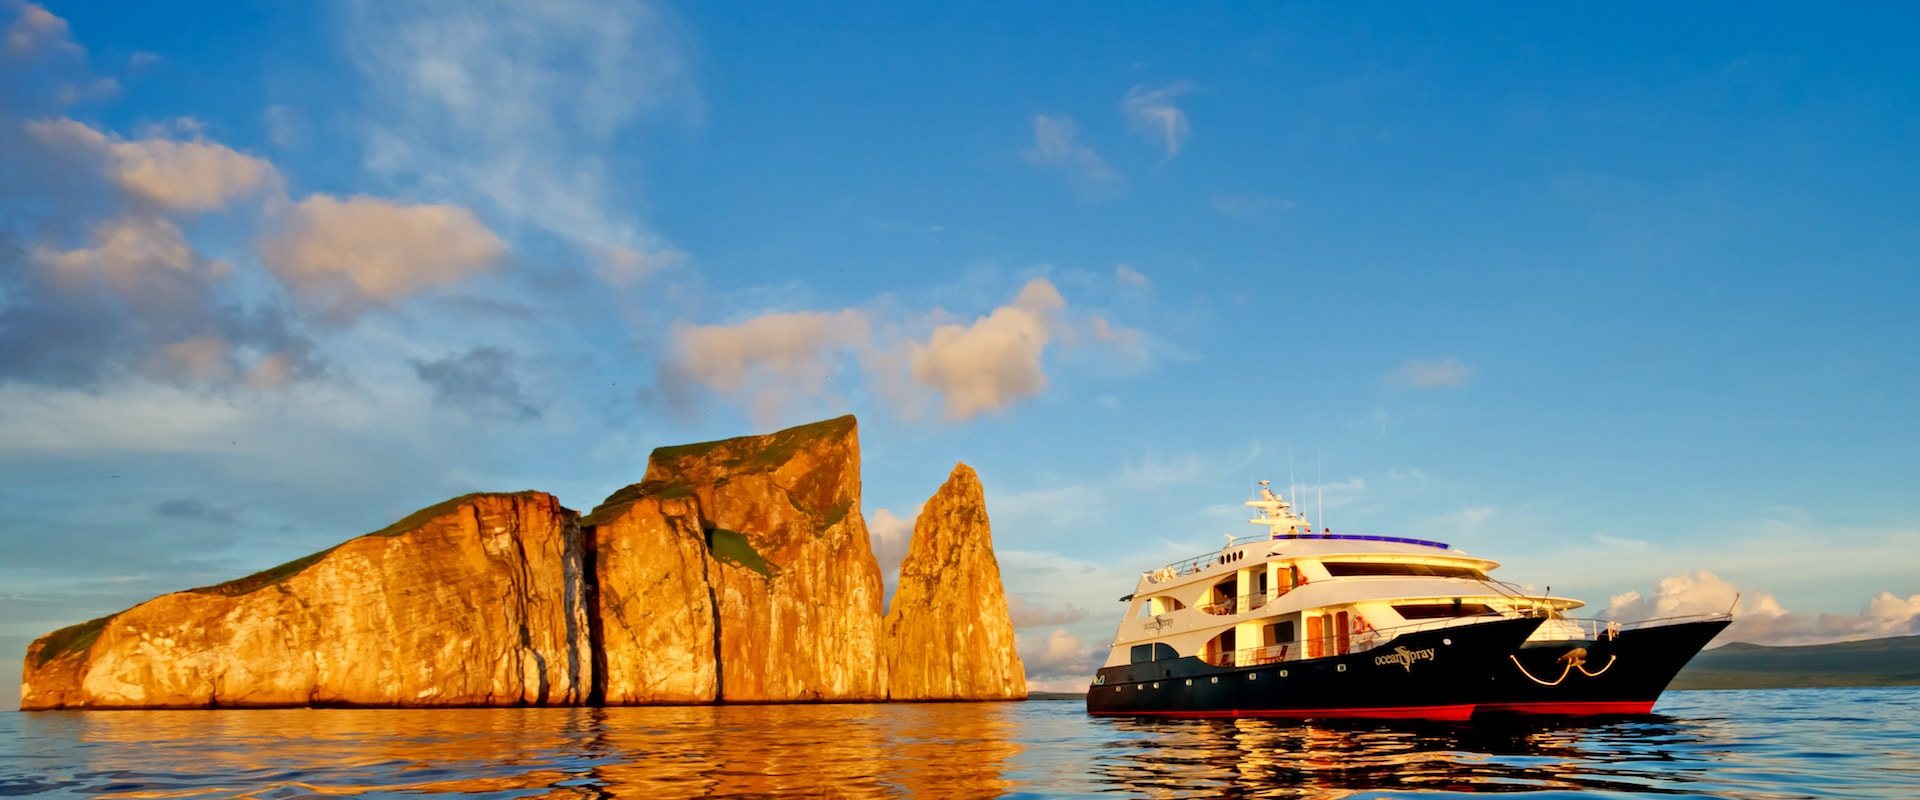 9 Small Ship Cruises in Galapagos - LiveAboard.com